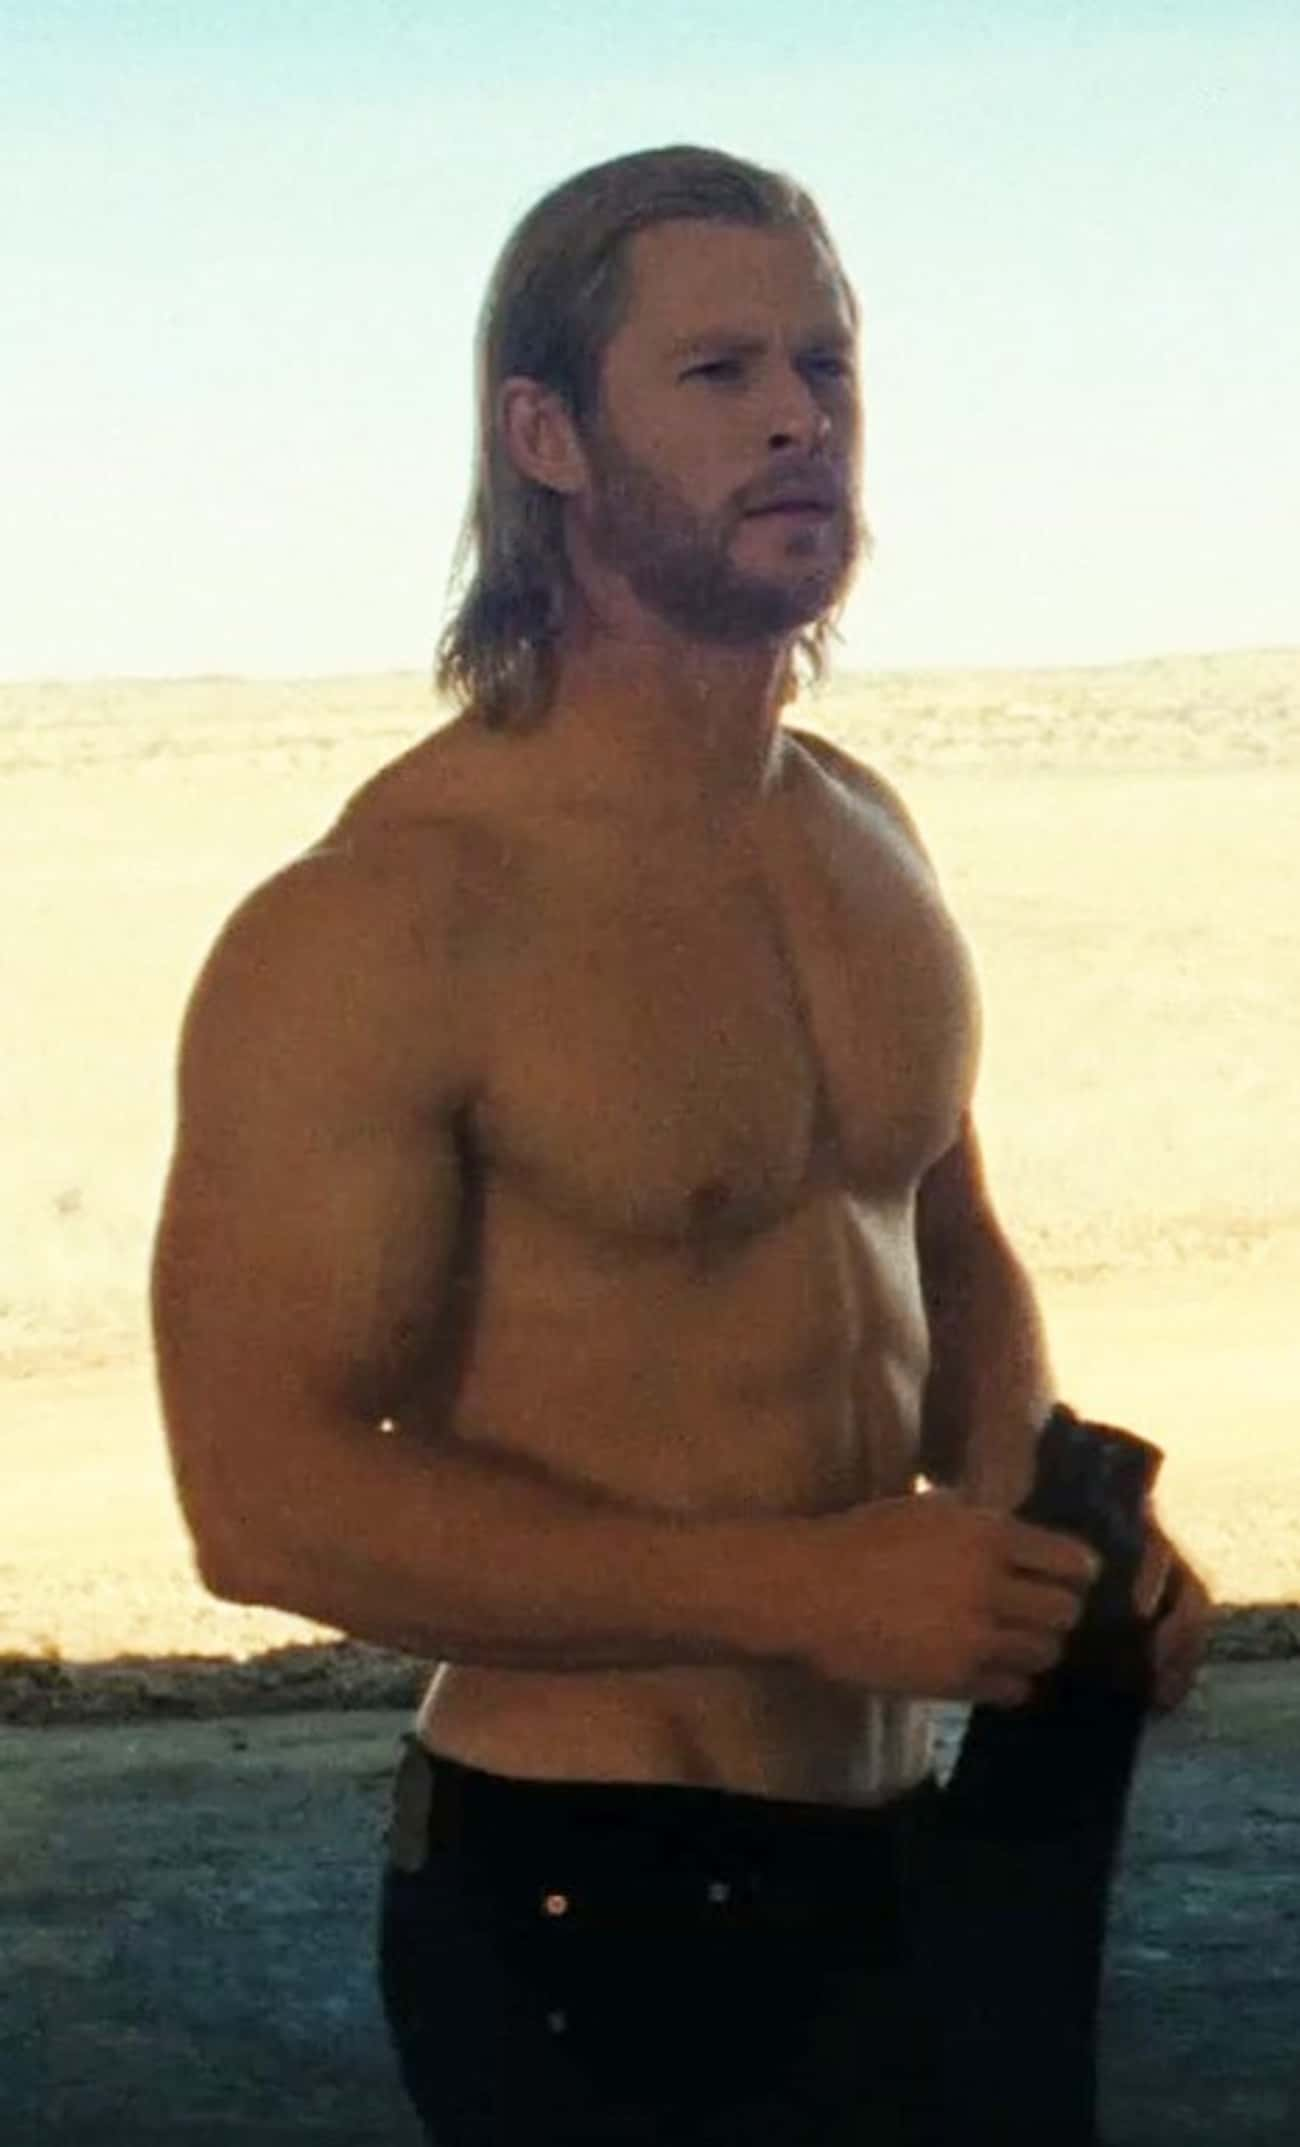 Chris Hemsworth in Shirtless w is listed (or ranked) 1 on the list Hot Chris Hemsworth Photos